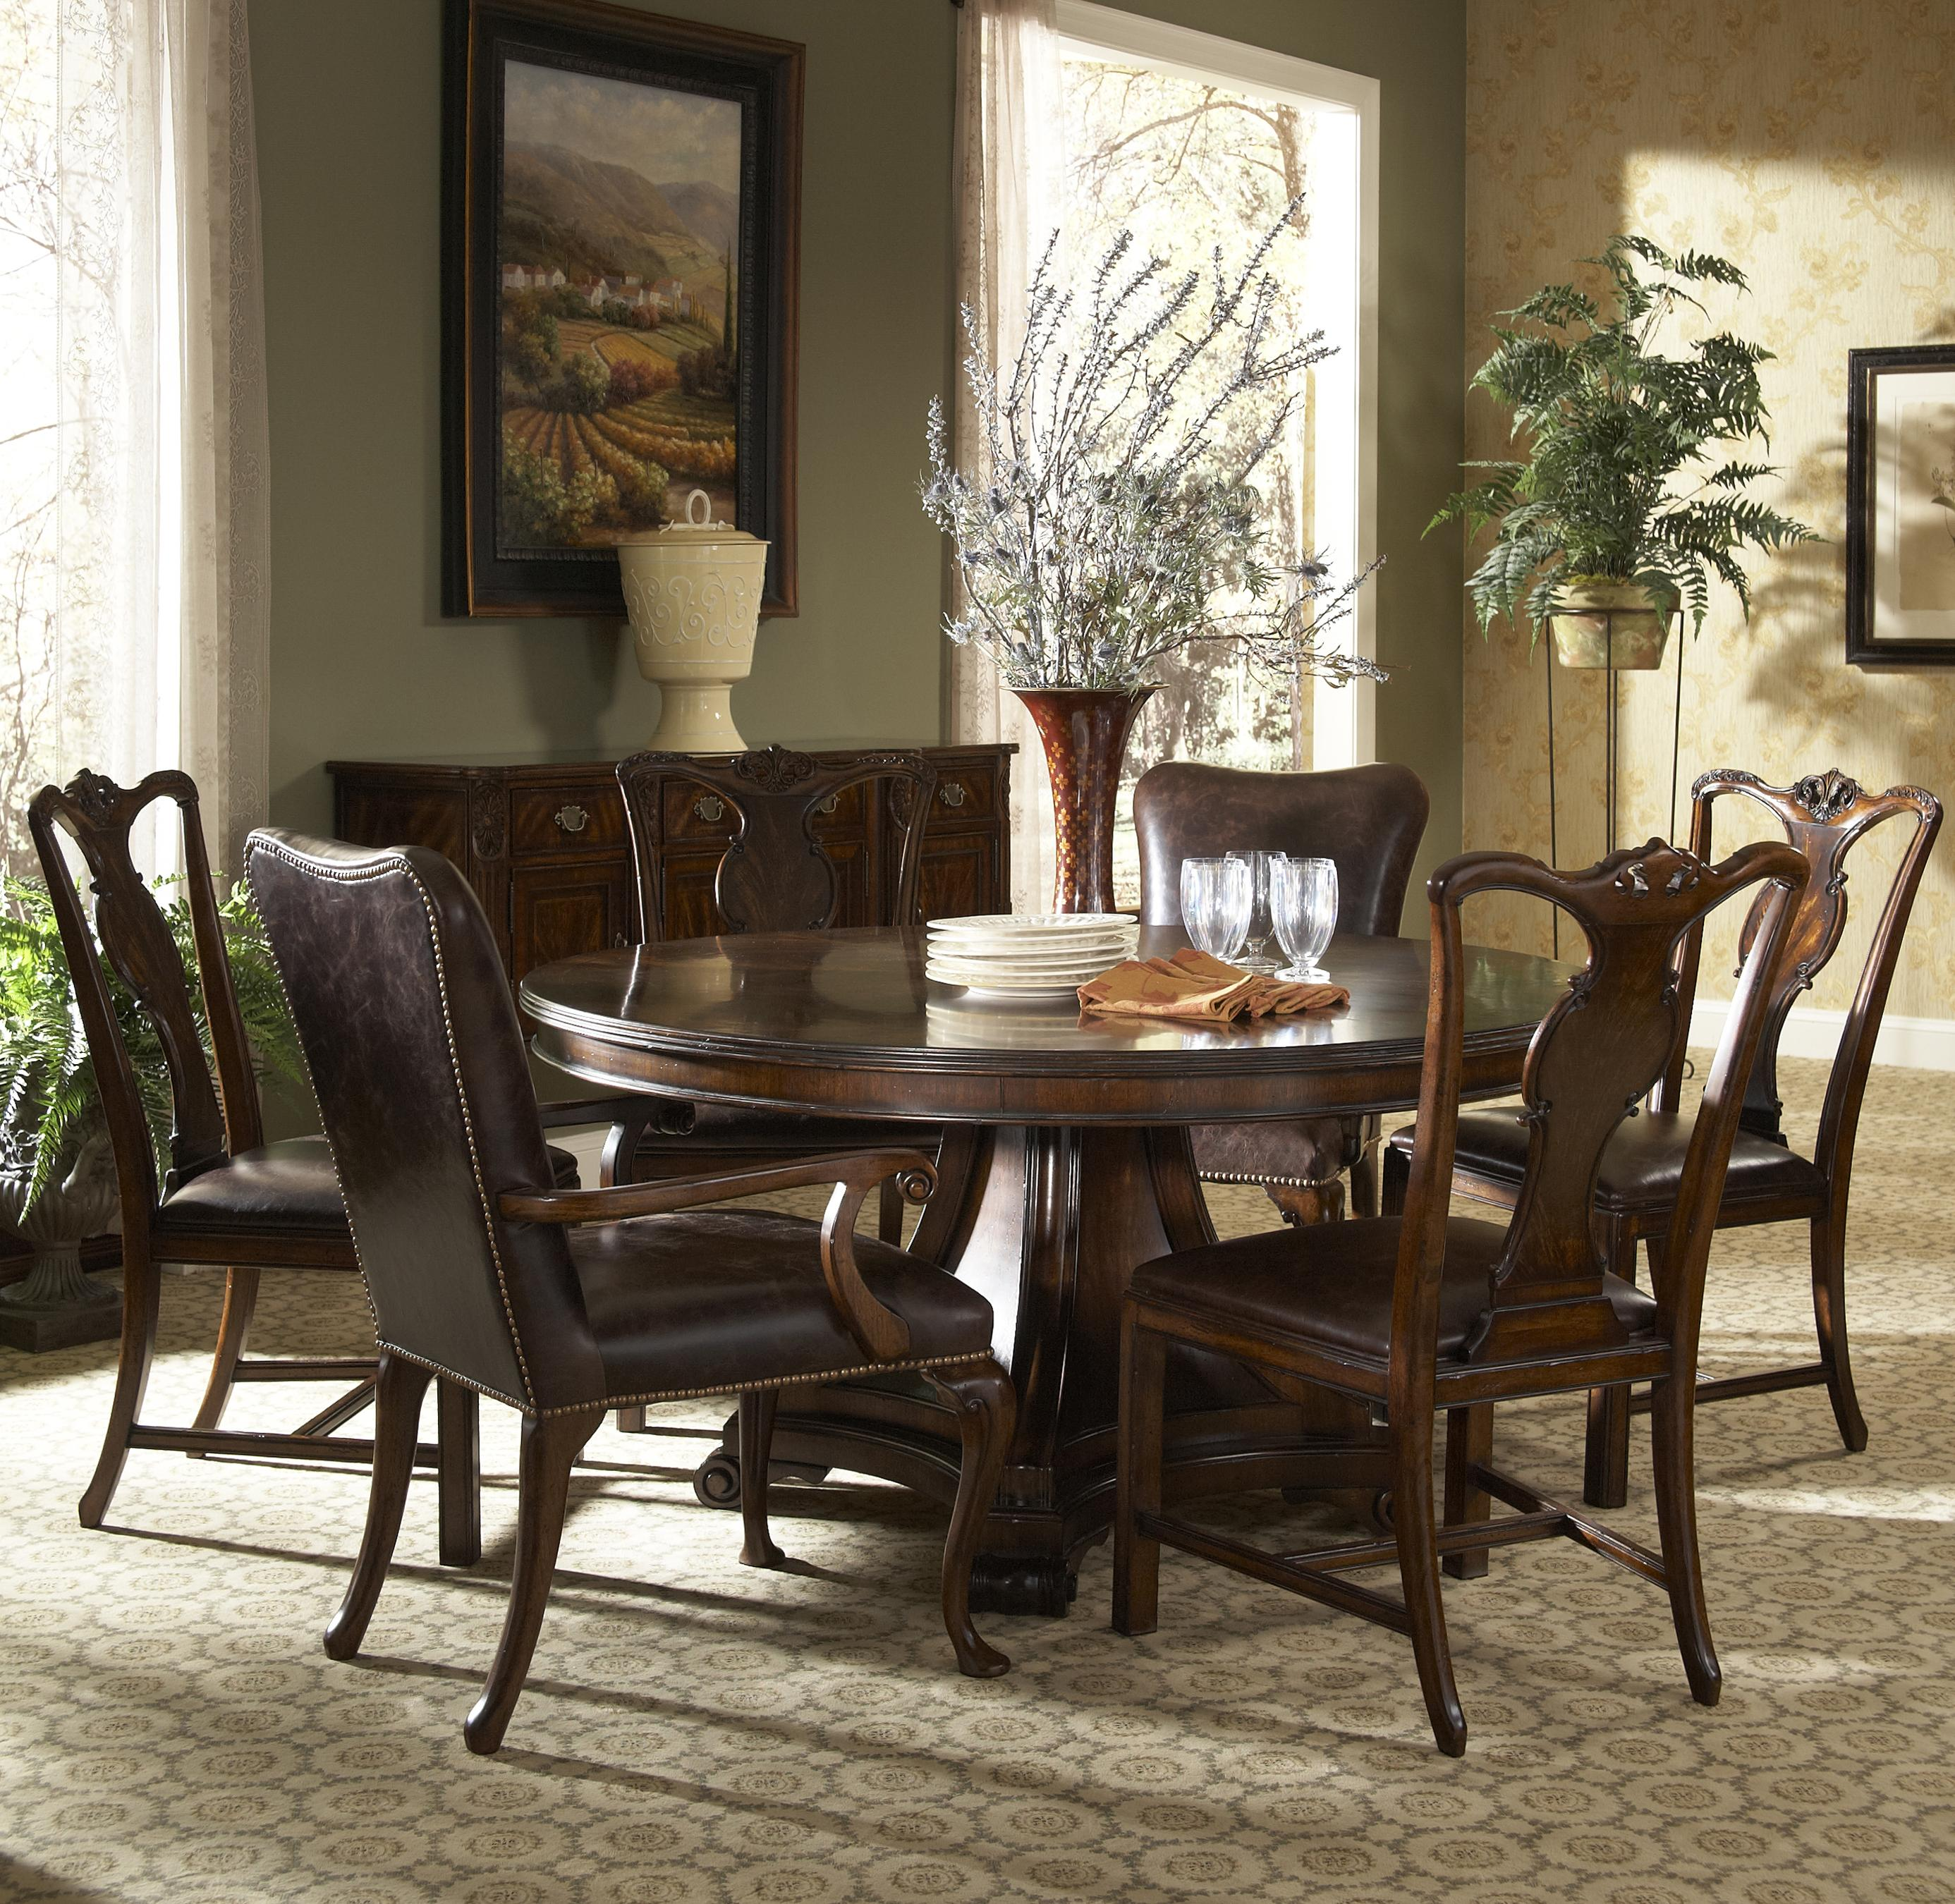 dining table with splat back dining side chairs and leather arm chairs